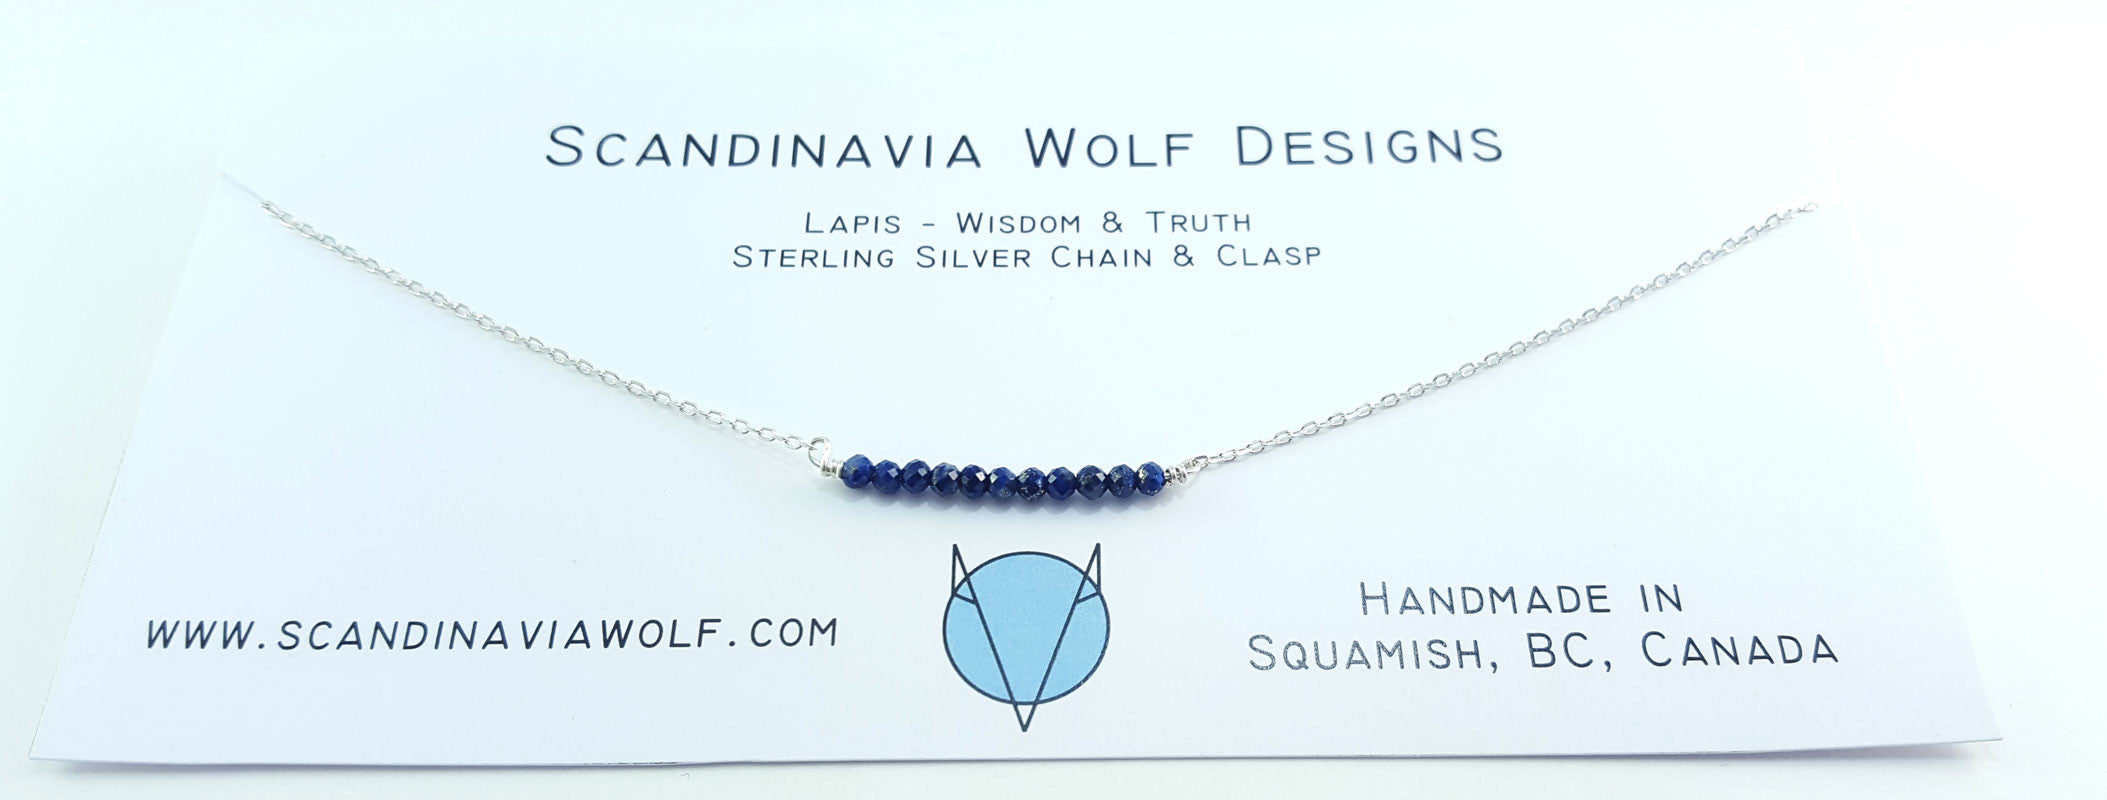 Lapis Sterling Silver Necklace